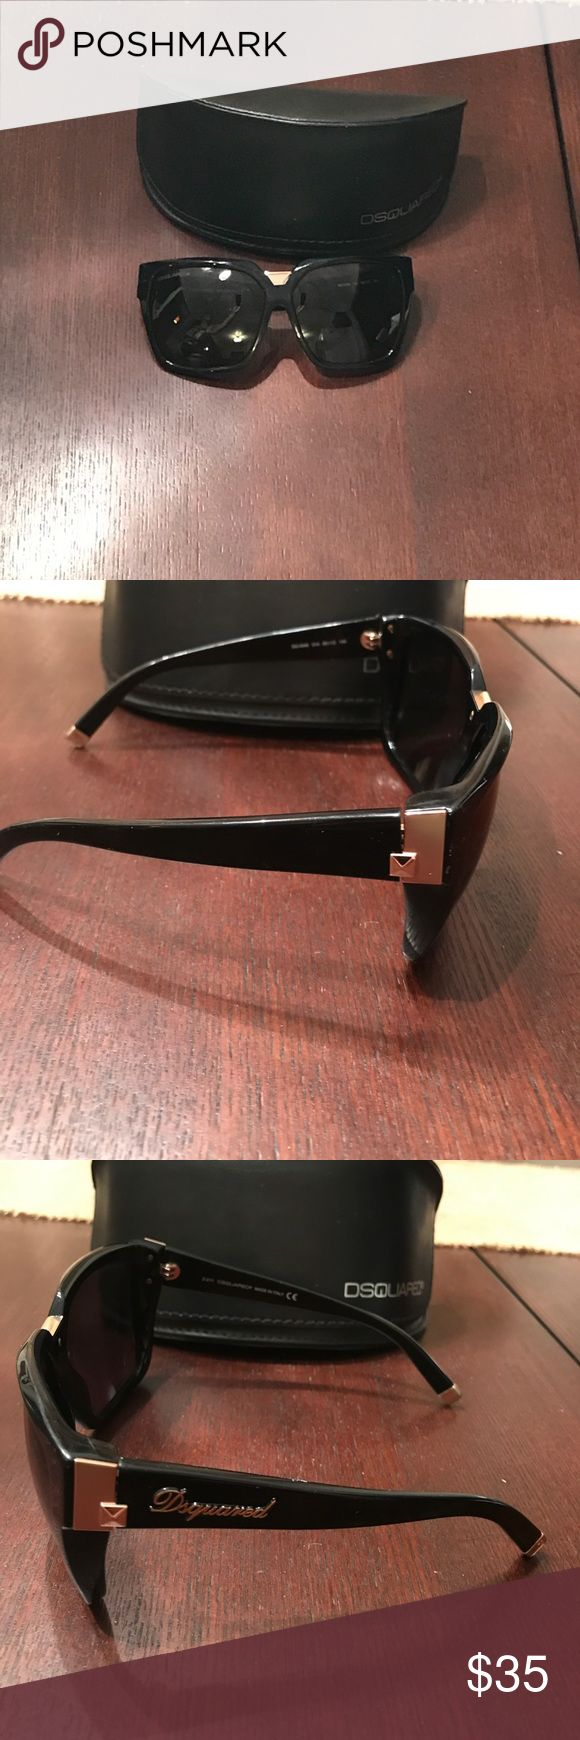 DSquated sunglasses Used DSquared sunglasses... there are some scratches on lenses and on frames, but in decent condition DSQUARED Accessories Sunglasses